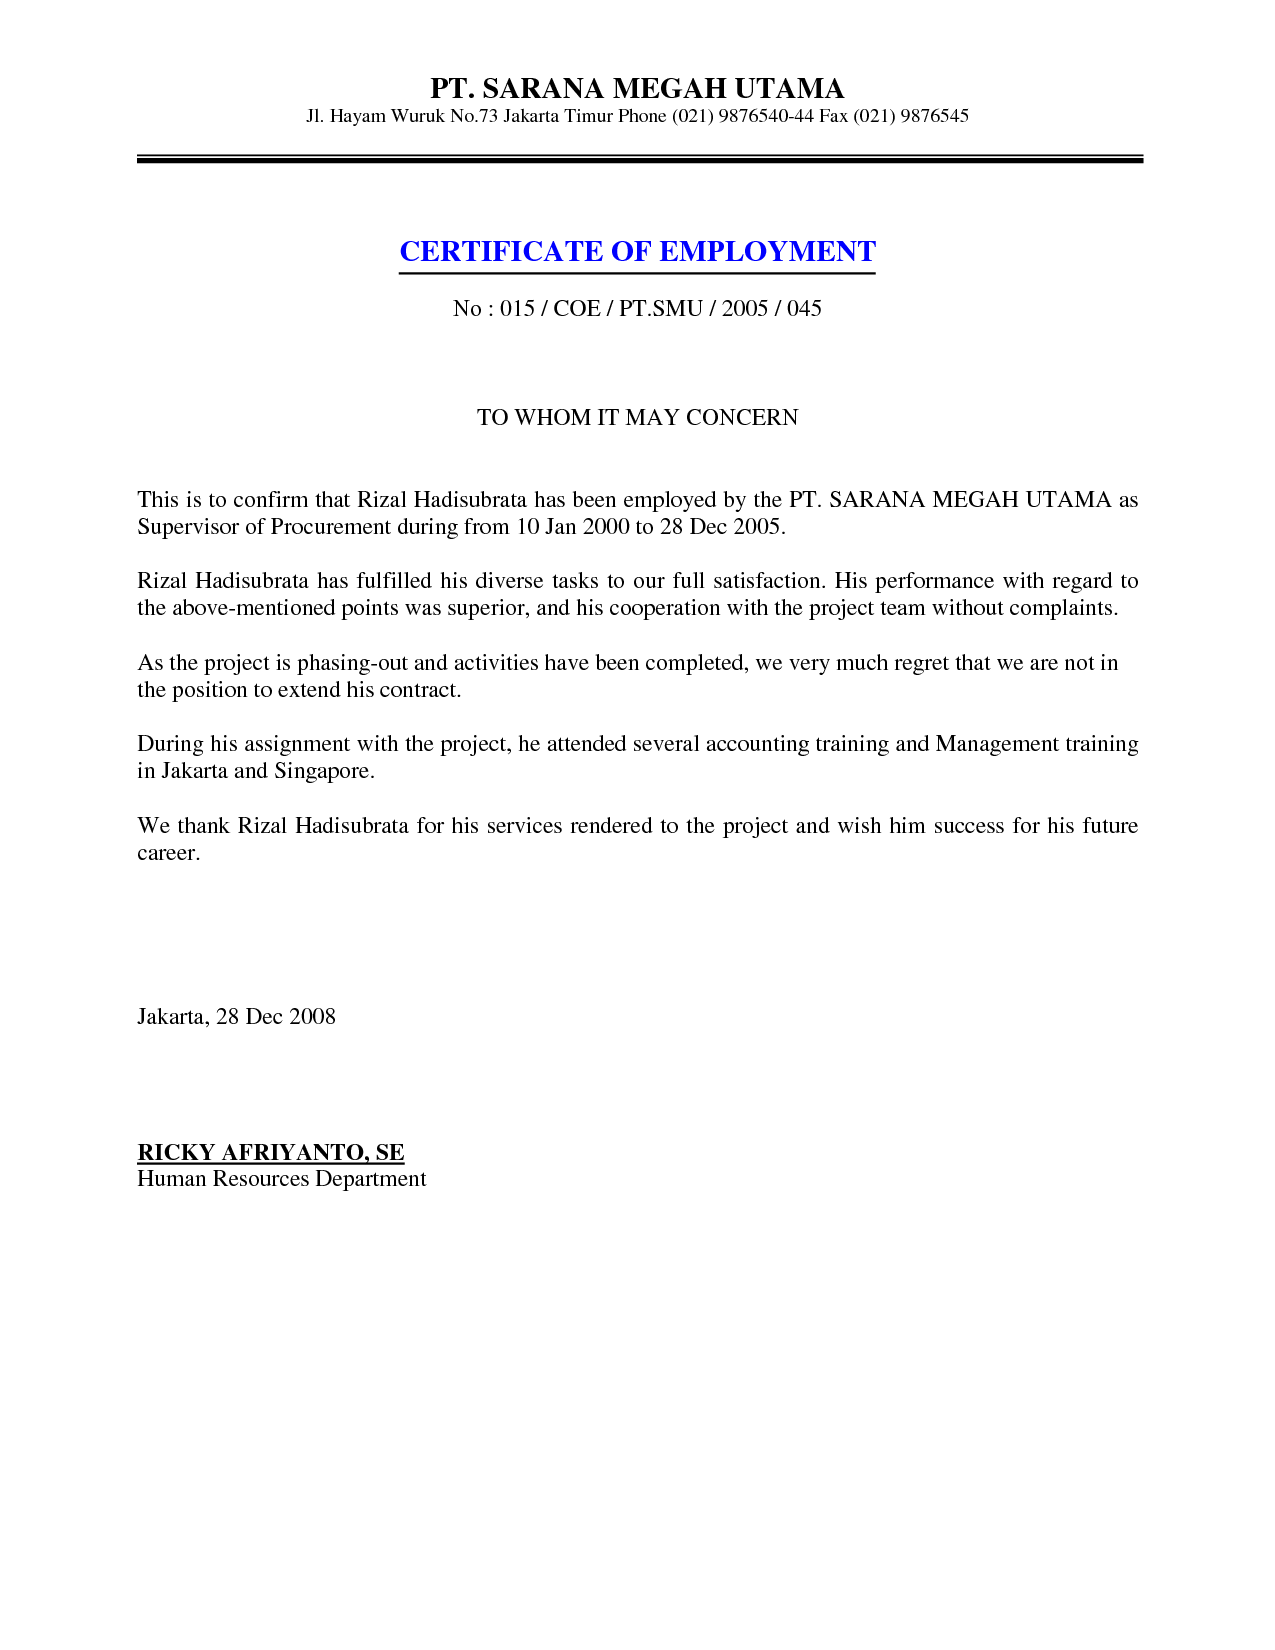 Job Employment Certificate Sample Certification Letter Letteres